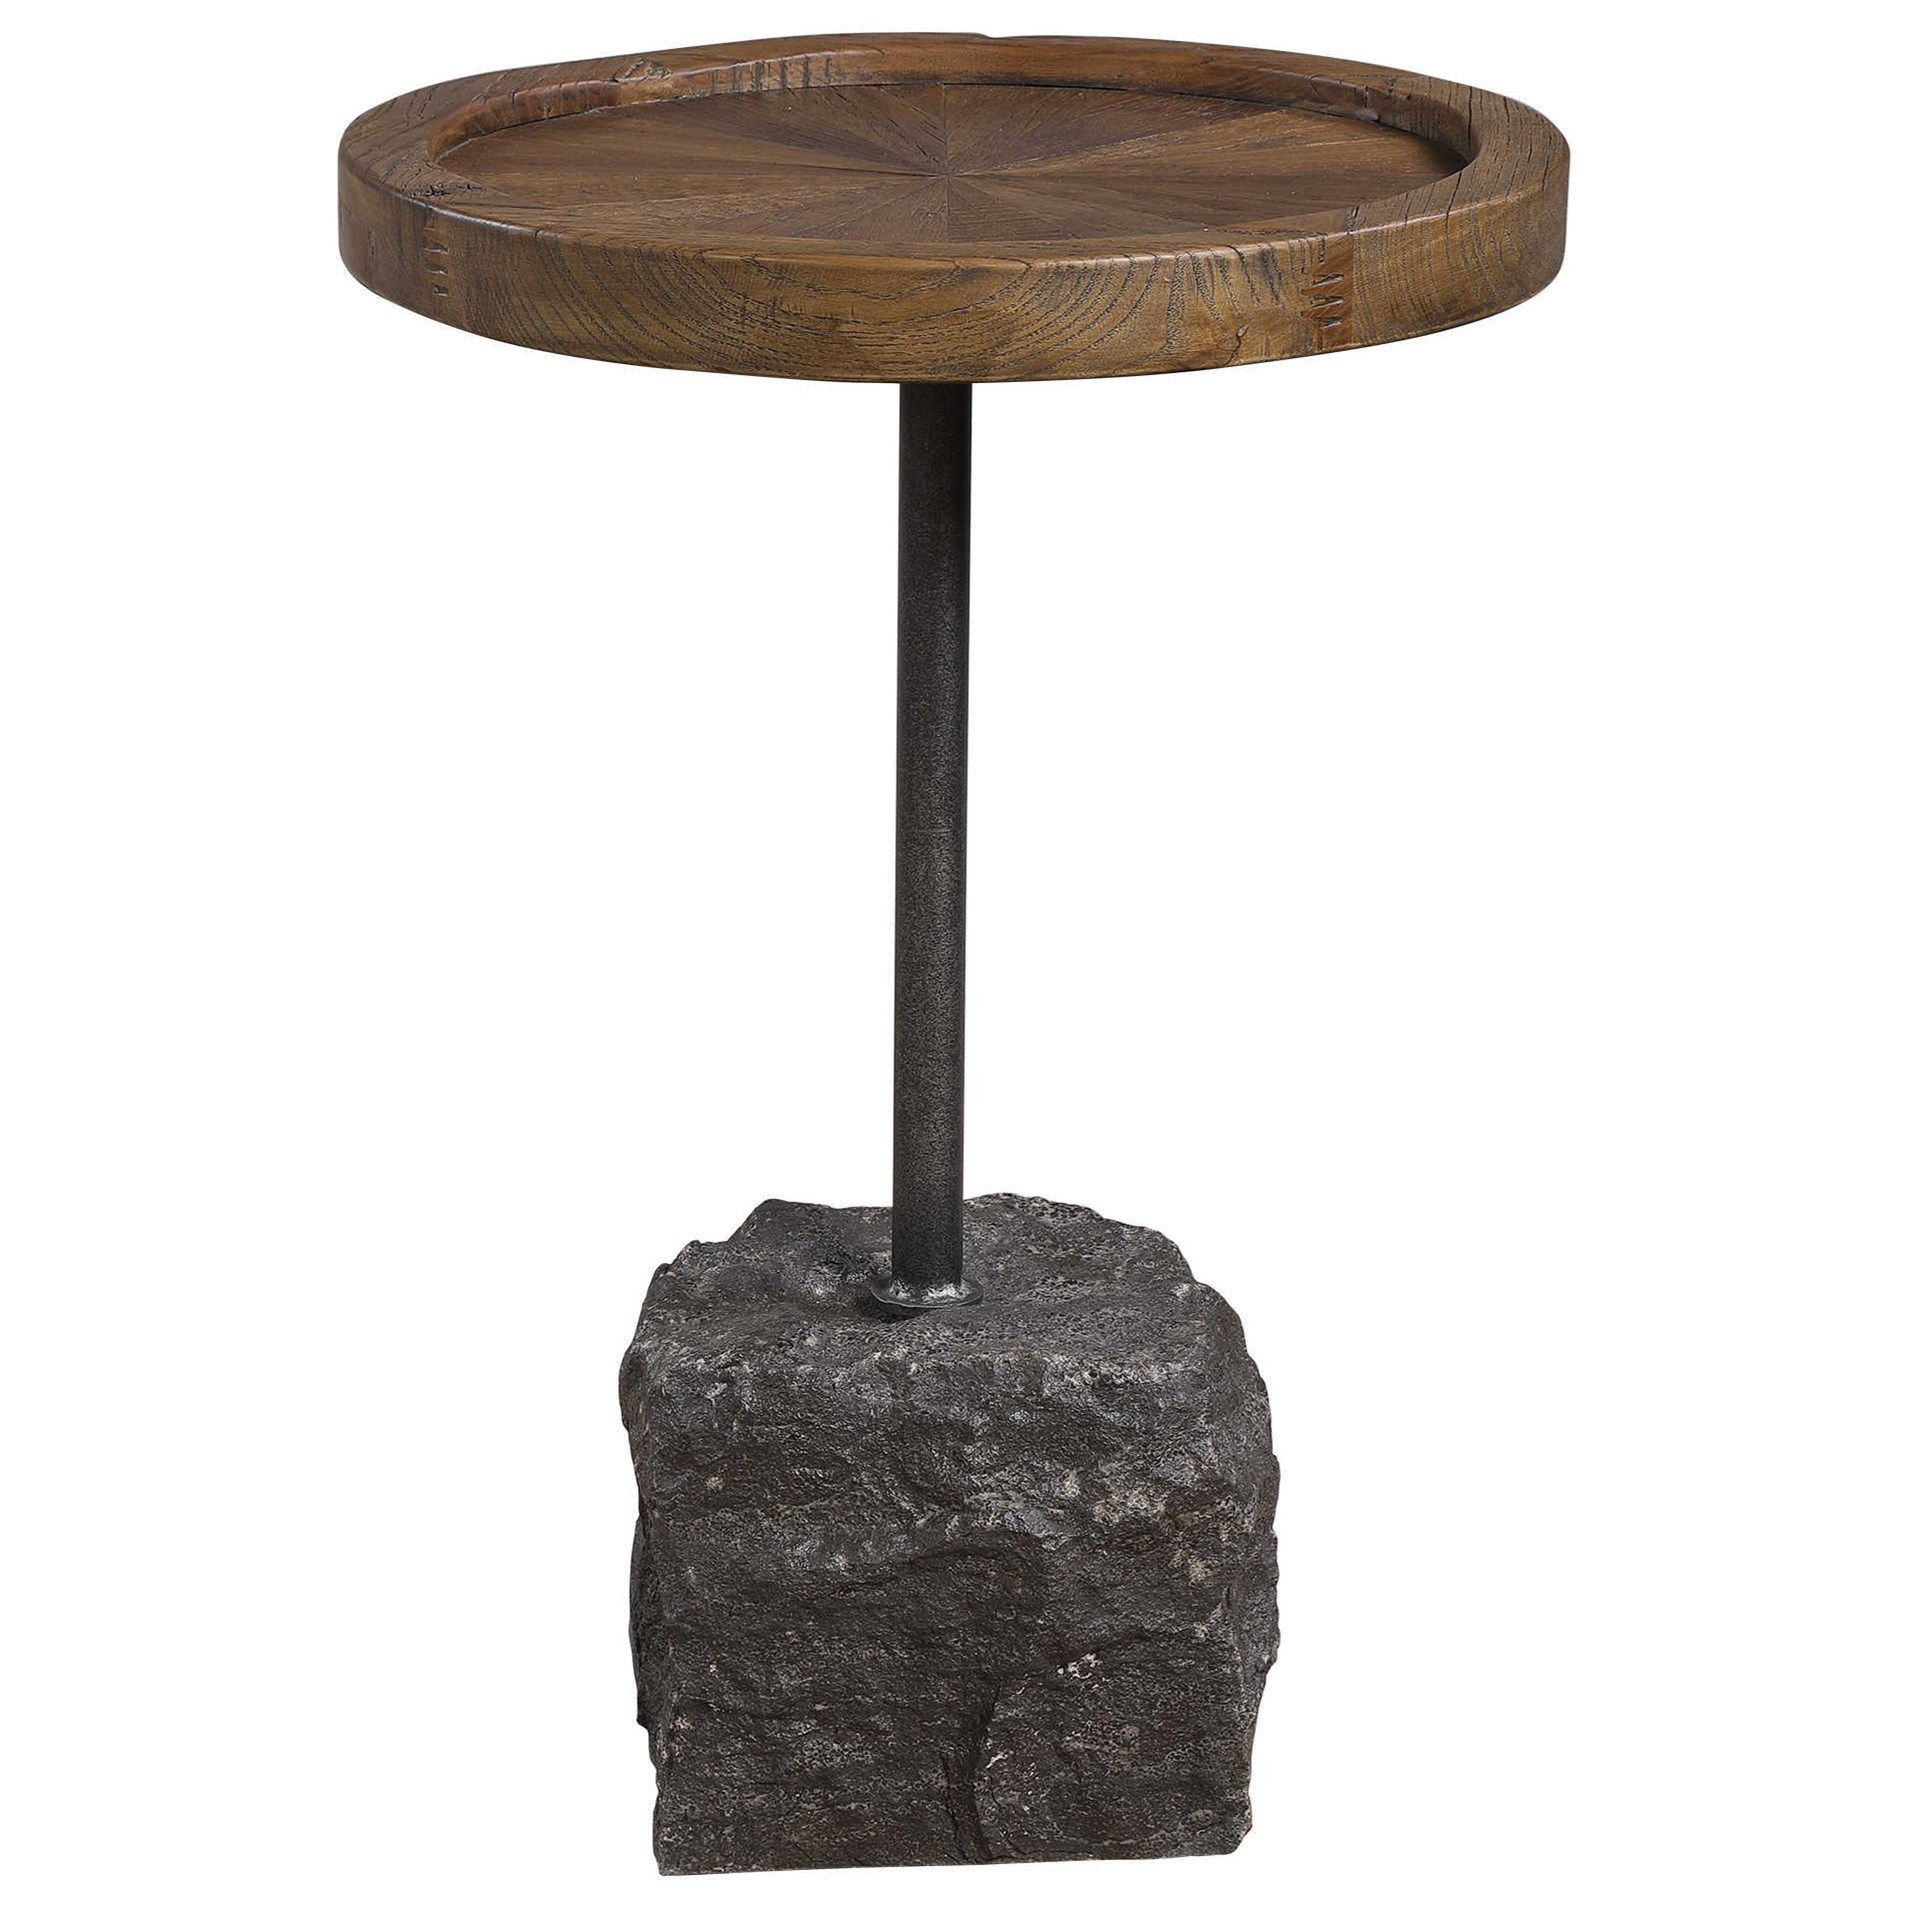 Accent Furniture - Occasional Tables Horton Accent Table by Uttermost at Reid's Furniture